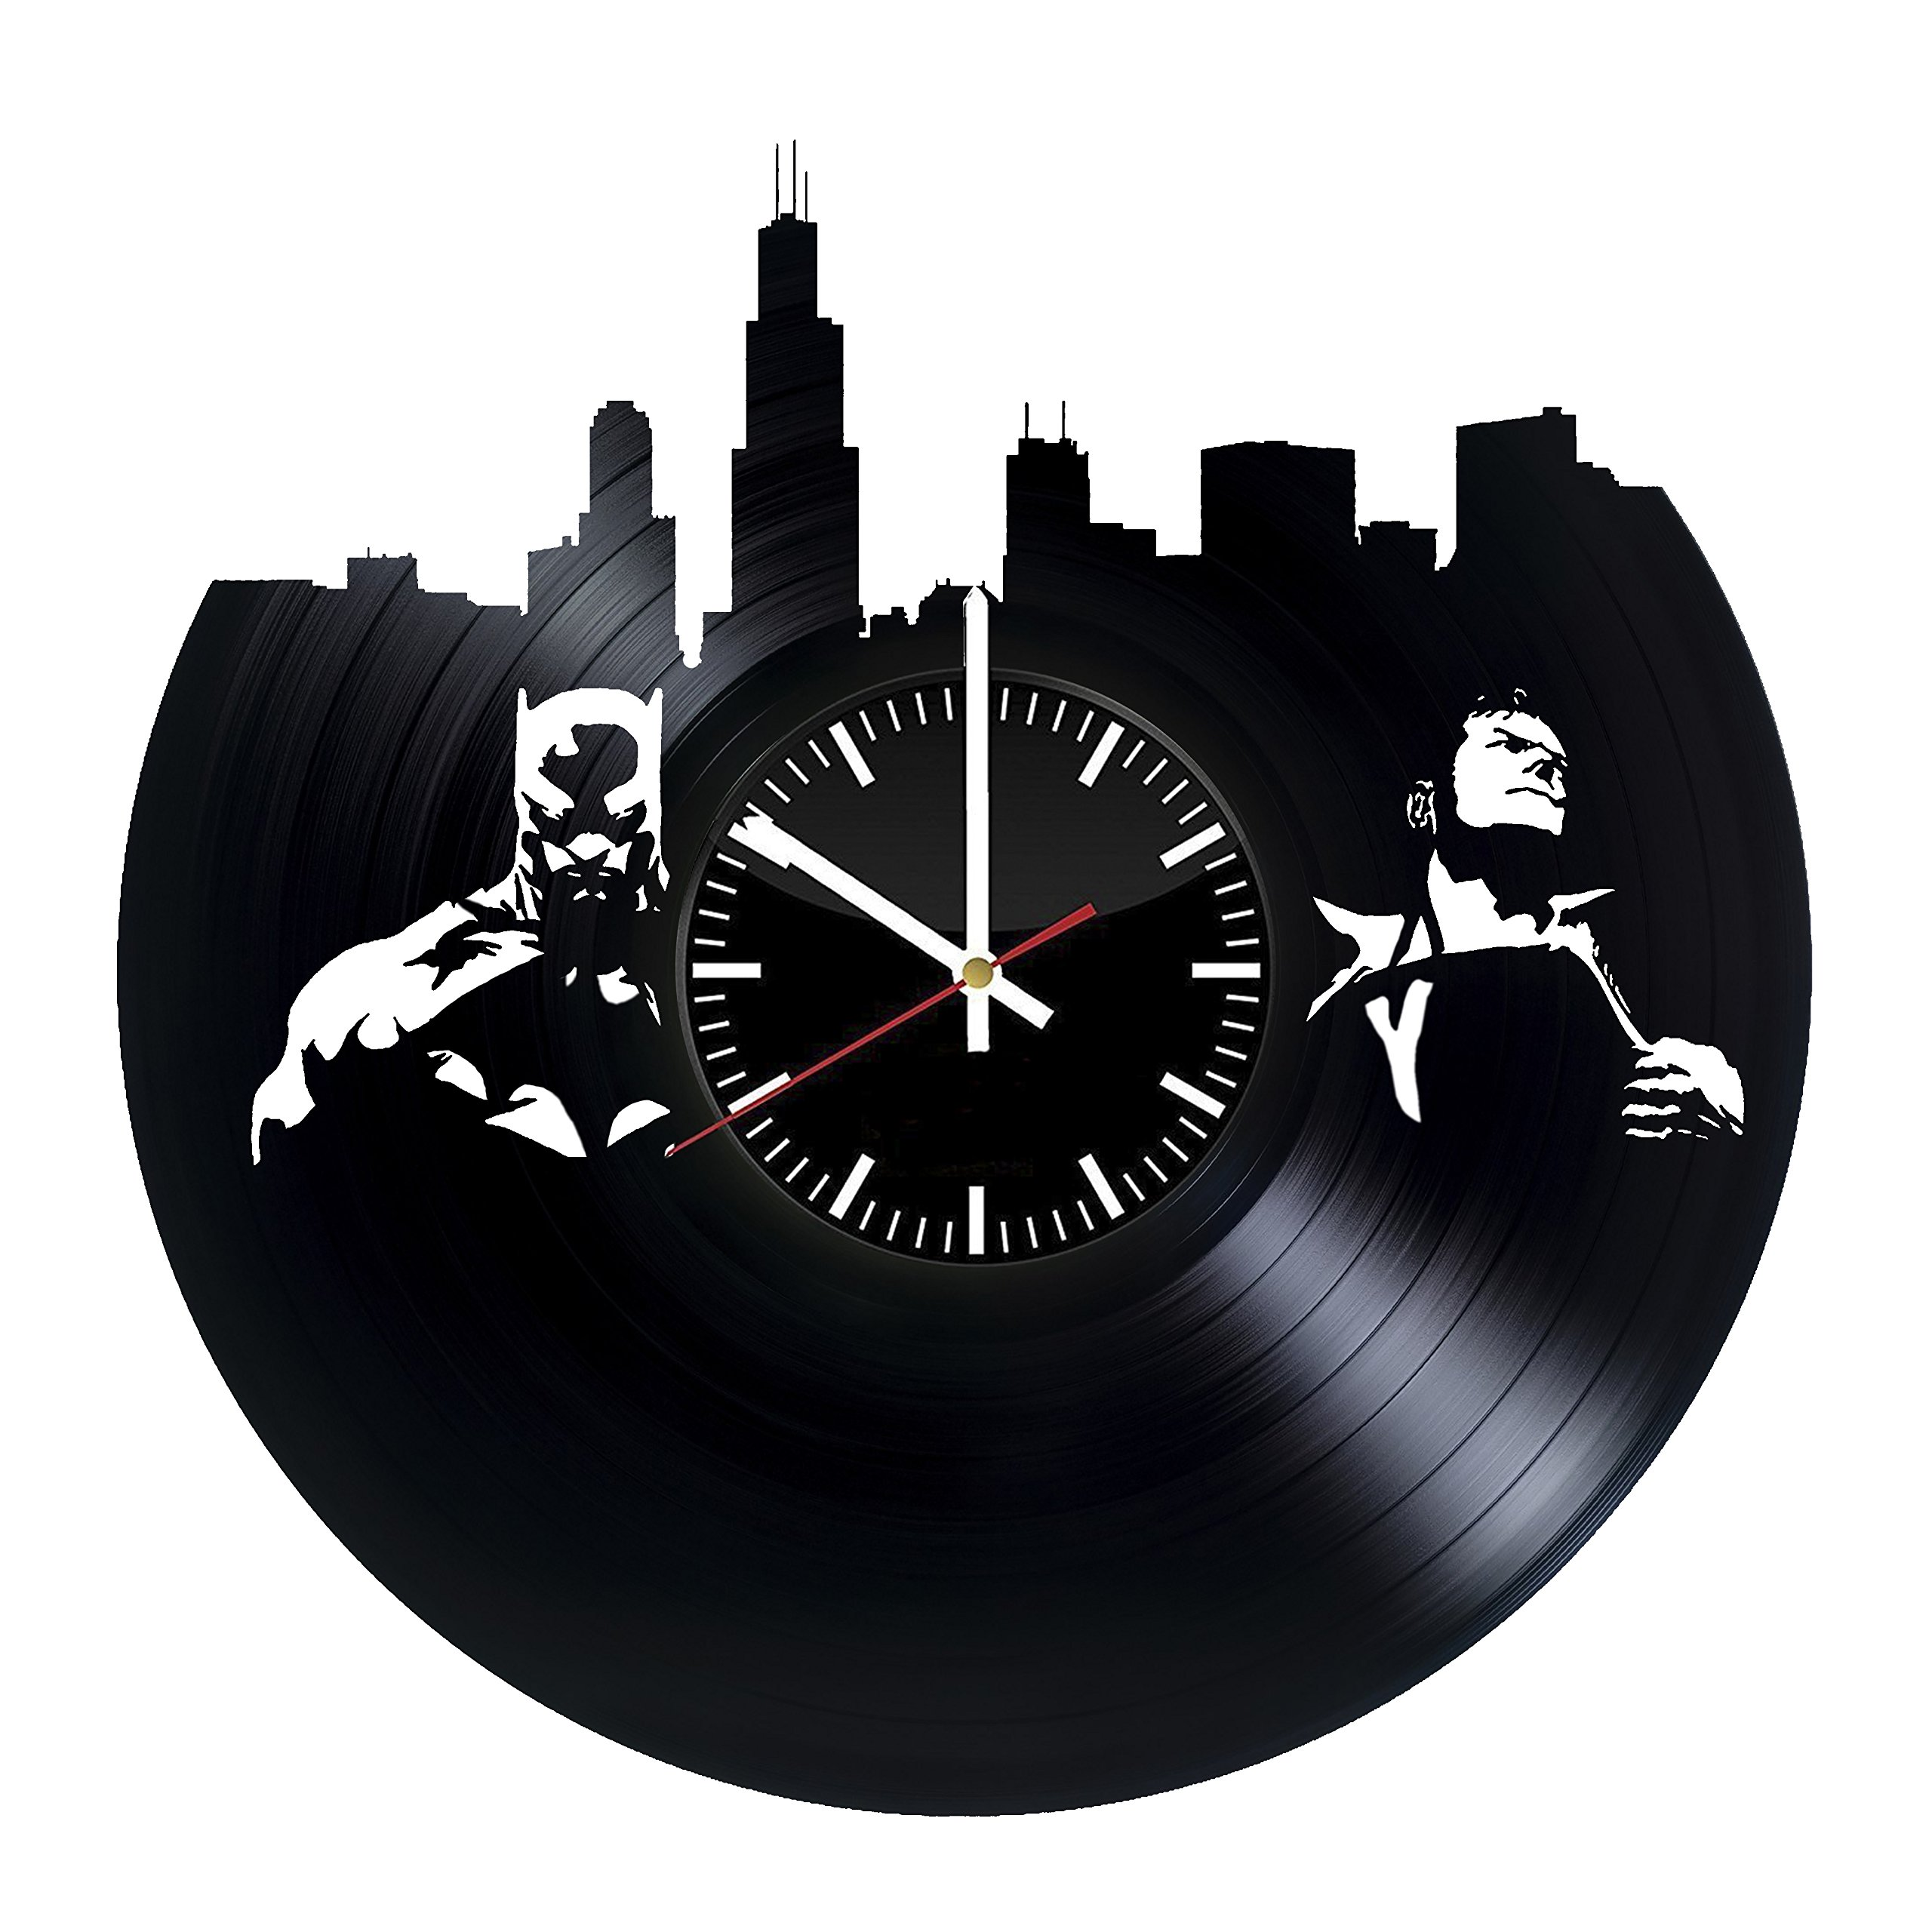 Welcome Everyday Arts Batman vs Superman Design Vinyl Record Wall Clock - Get unique bedroom or garage wall decor - Gift ideas for friends, brother – DC Comics Legends Unique Modern Art